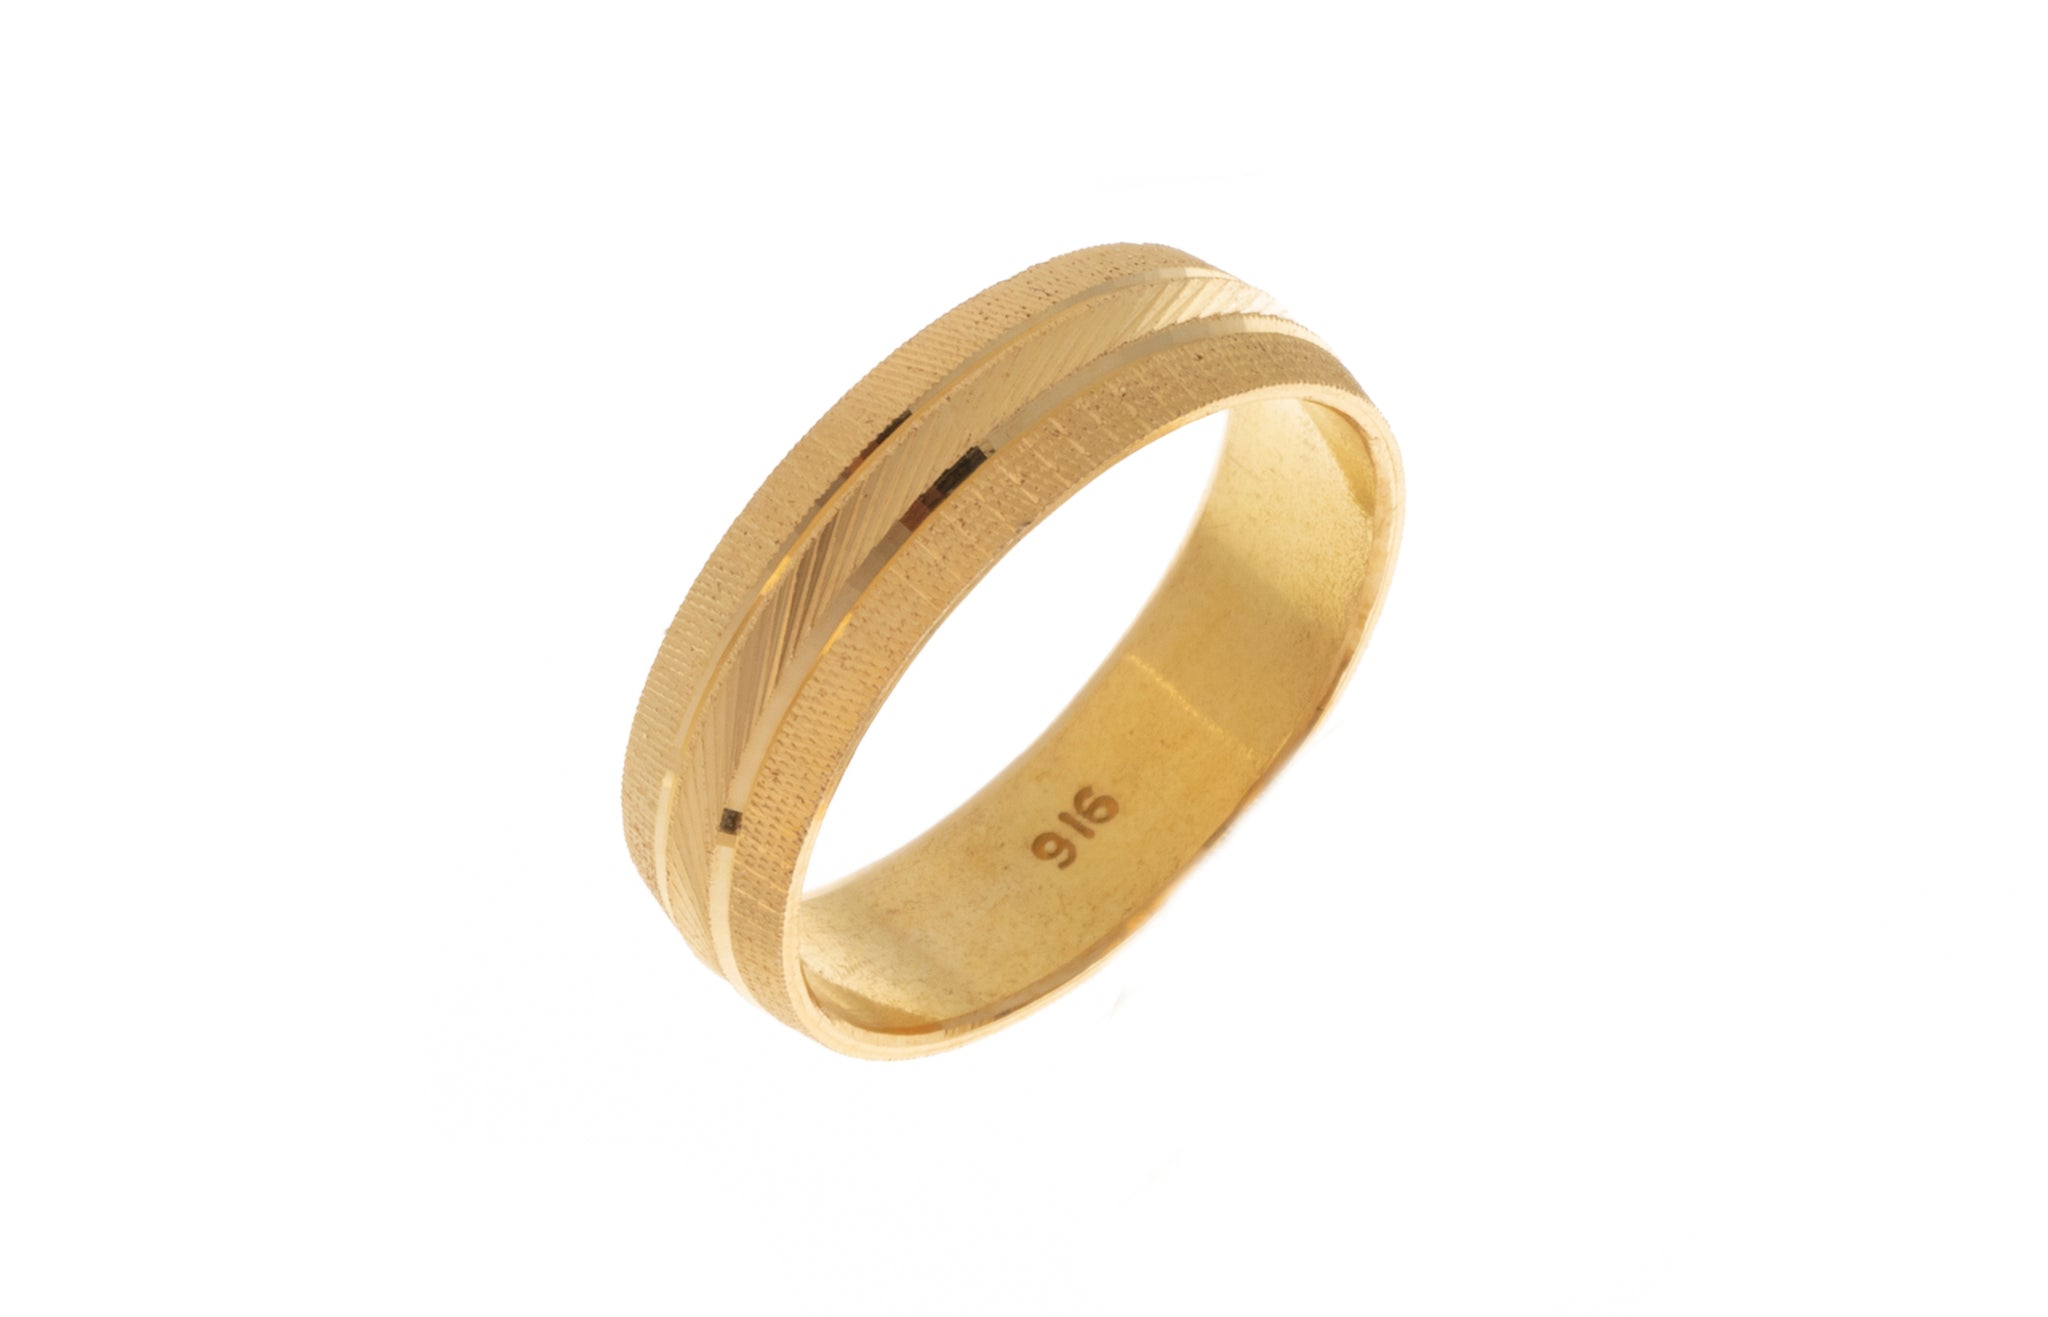 22ct Gold Wedding Band with Diamond Cut Design LR/GR-7364